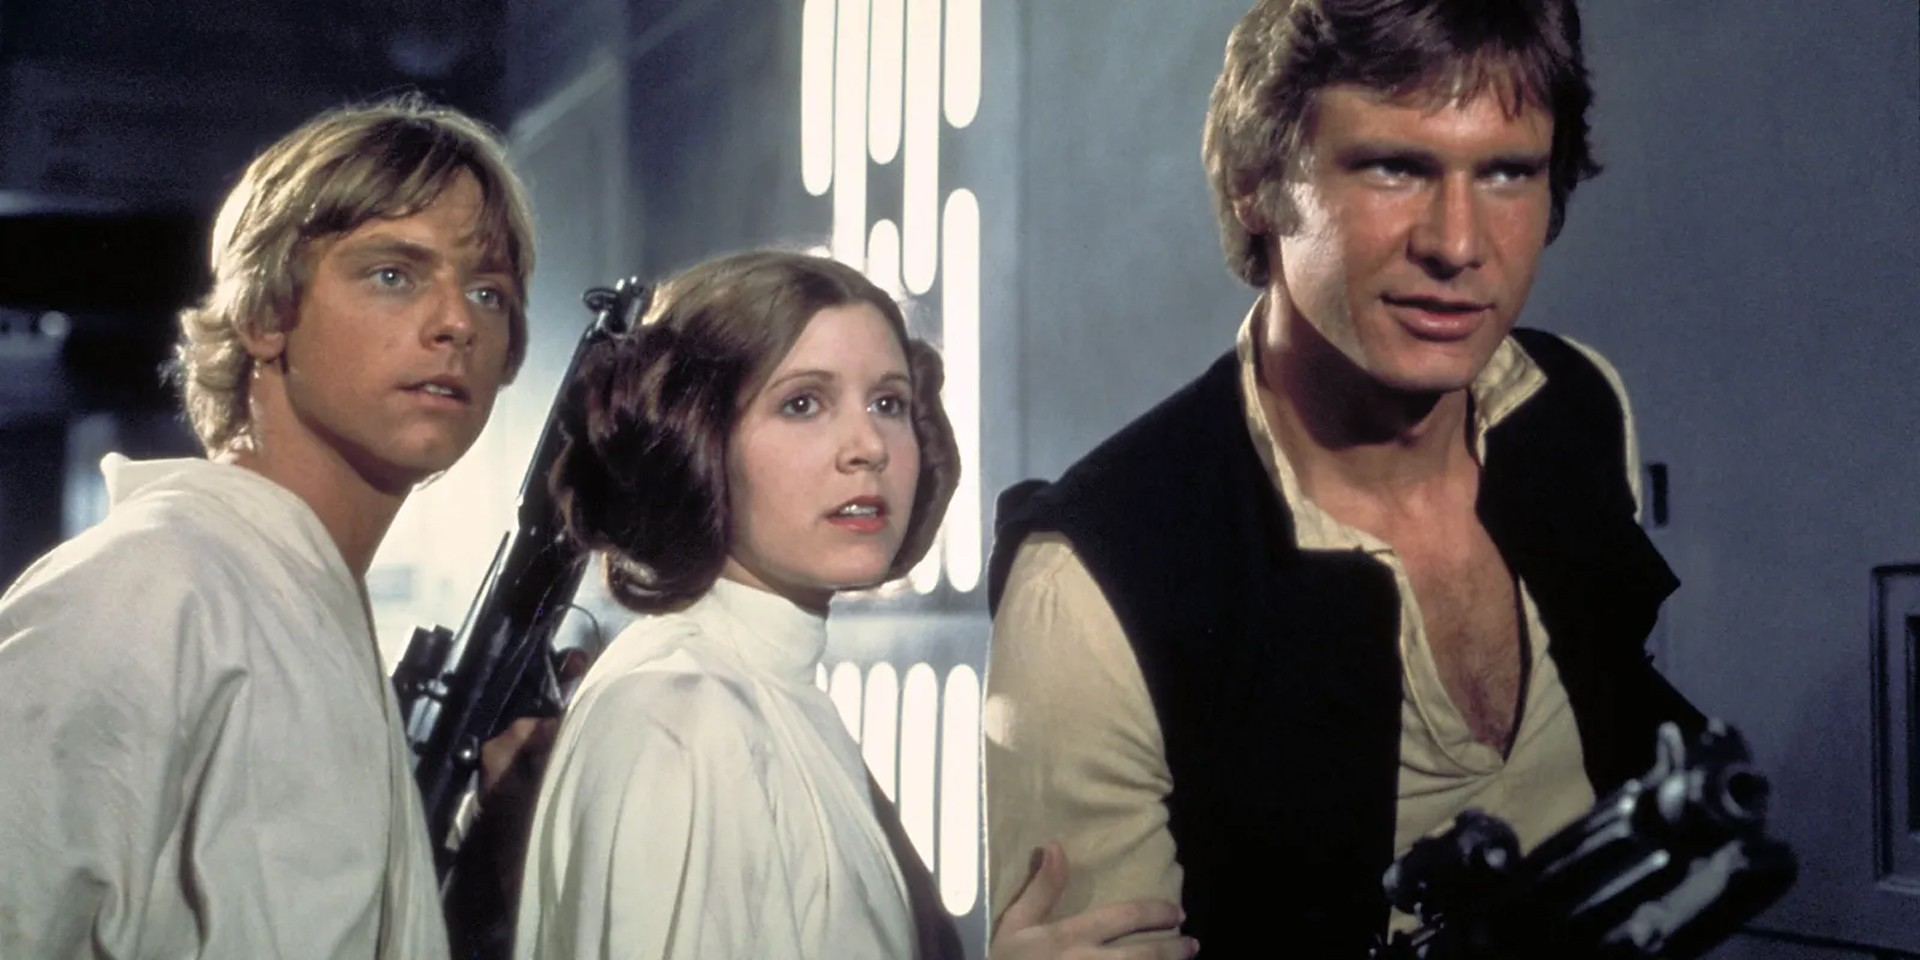 Star Wars: A New Hope in Concert in Manila has been postponed to 2021